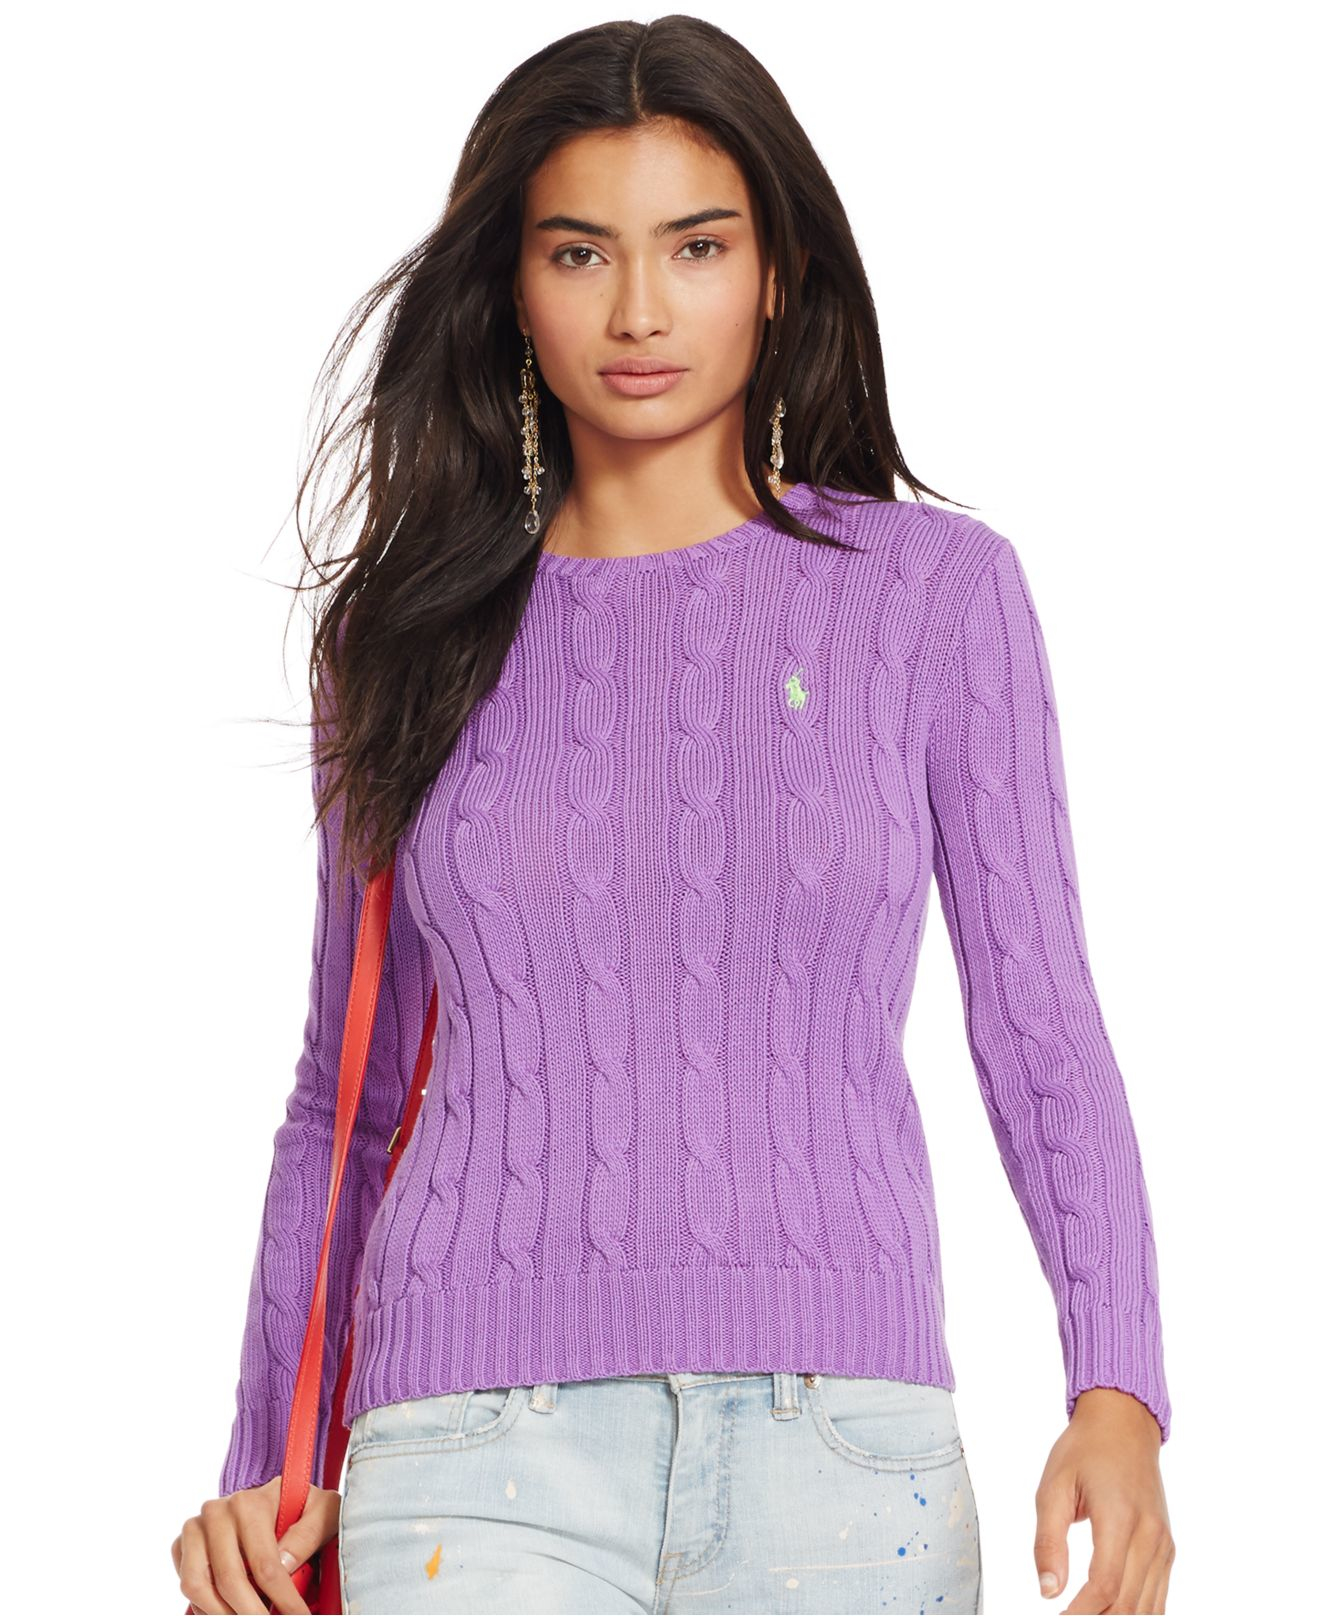 Polo ralph lauren Cable-knit Crewneck Sweater in Purple | Lyst